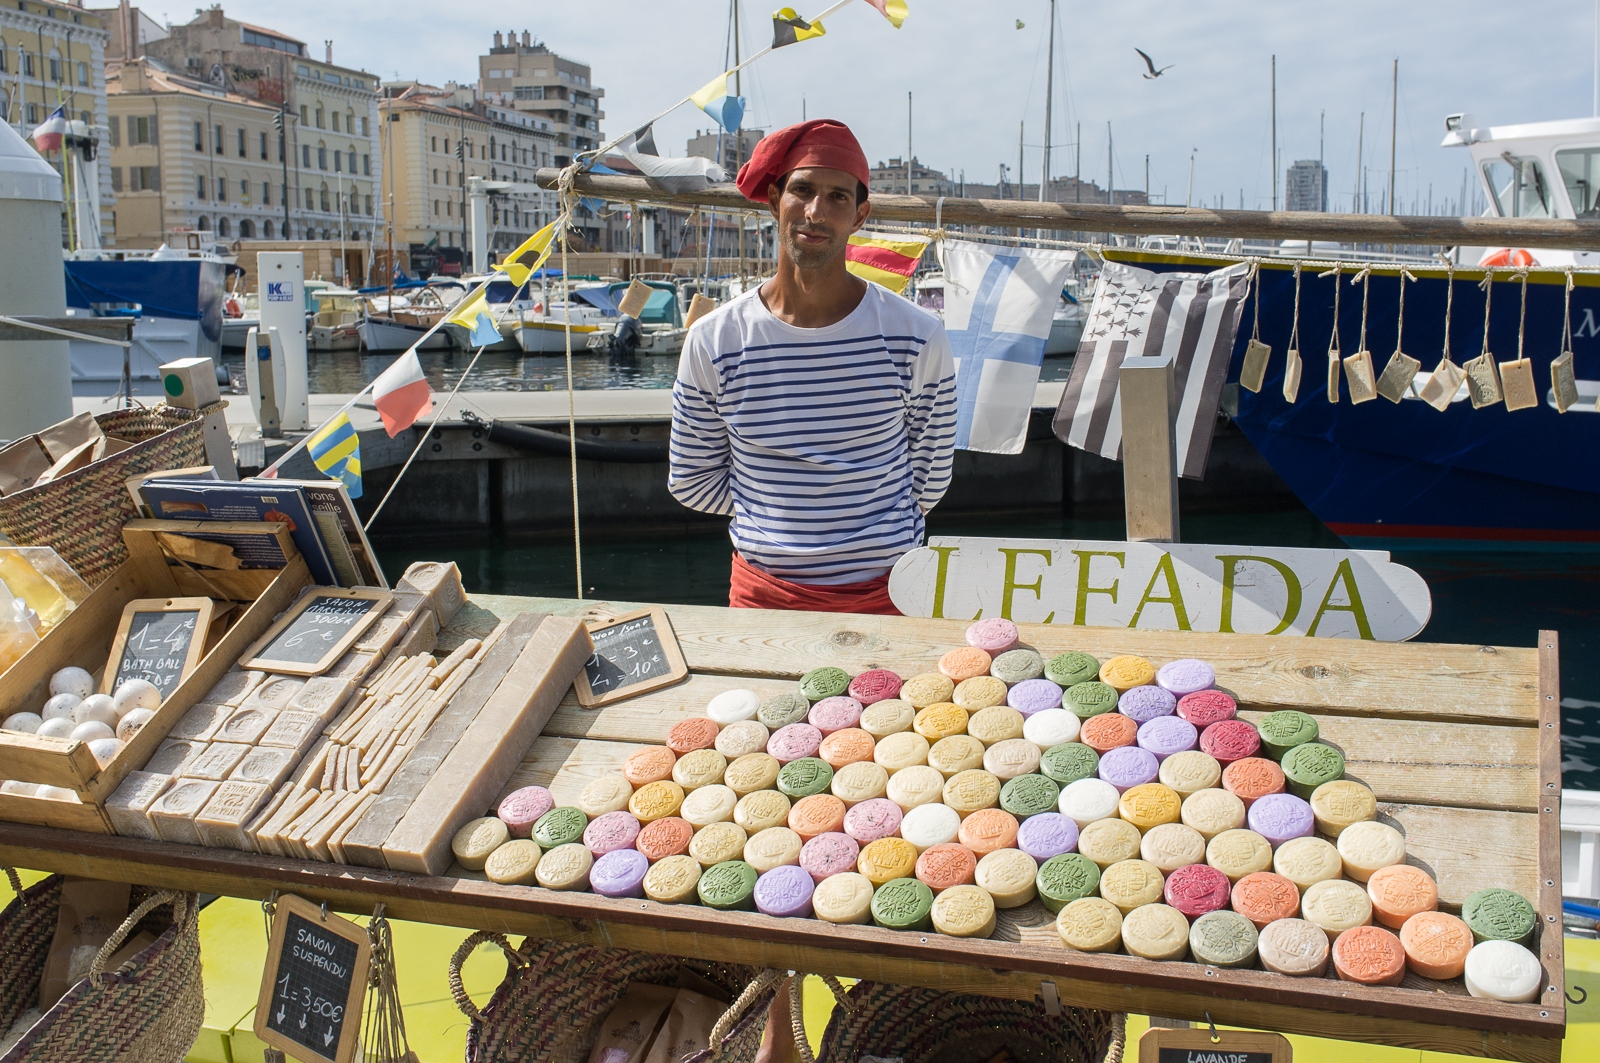 Lefada selling Marseille soap